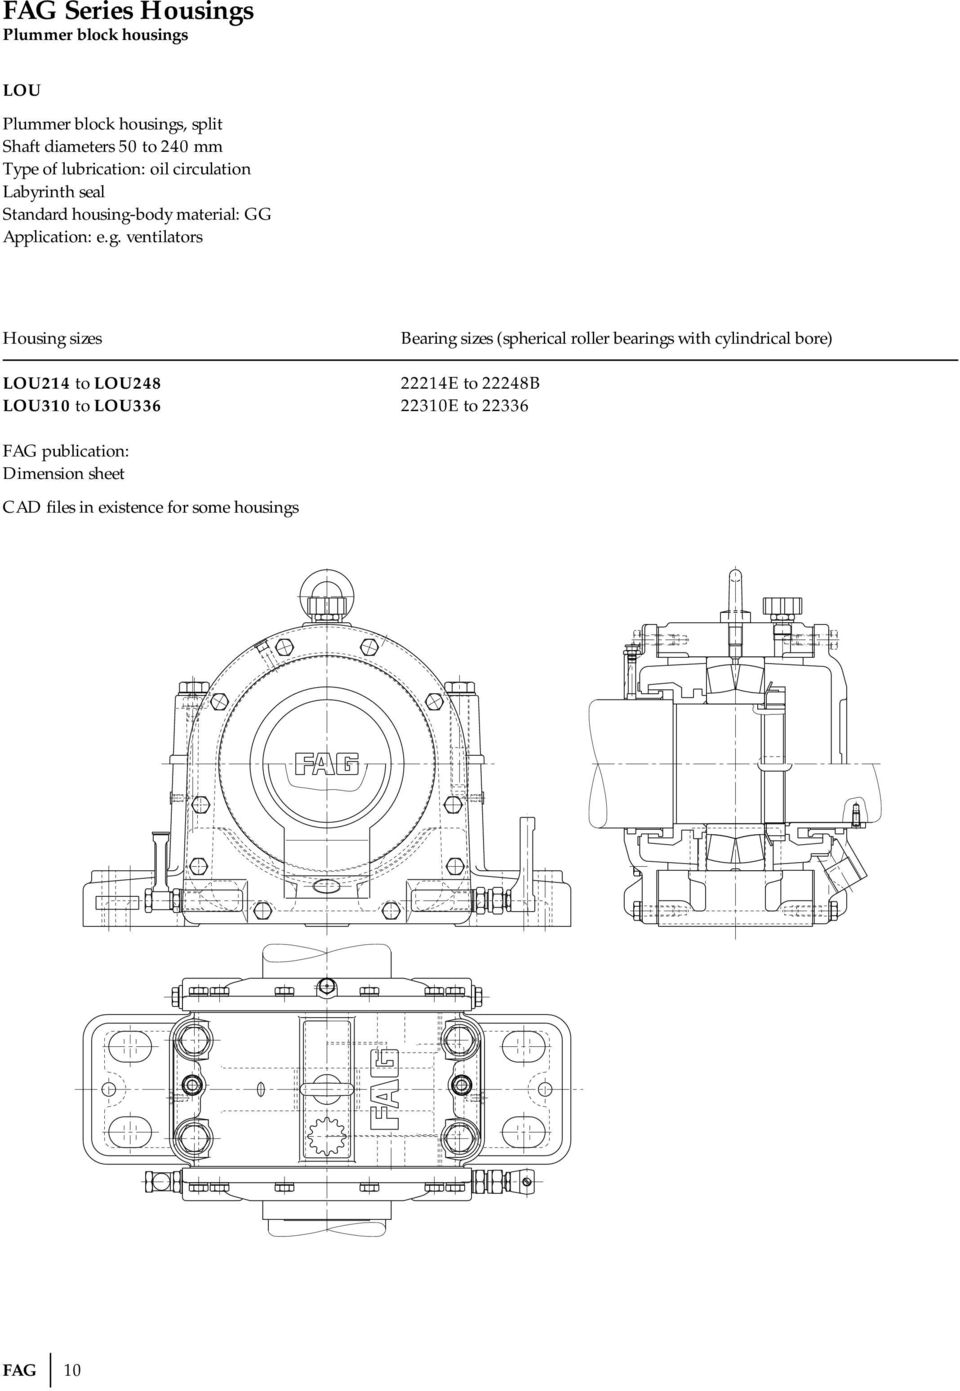 Technical Information Pdf Roll Bearing Energy Saving Ball Mill Diagram Ventilators Sizes Spherical Roller Bearings With Cylindrical Bore